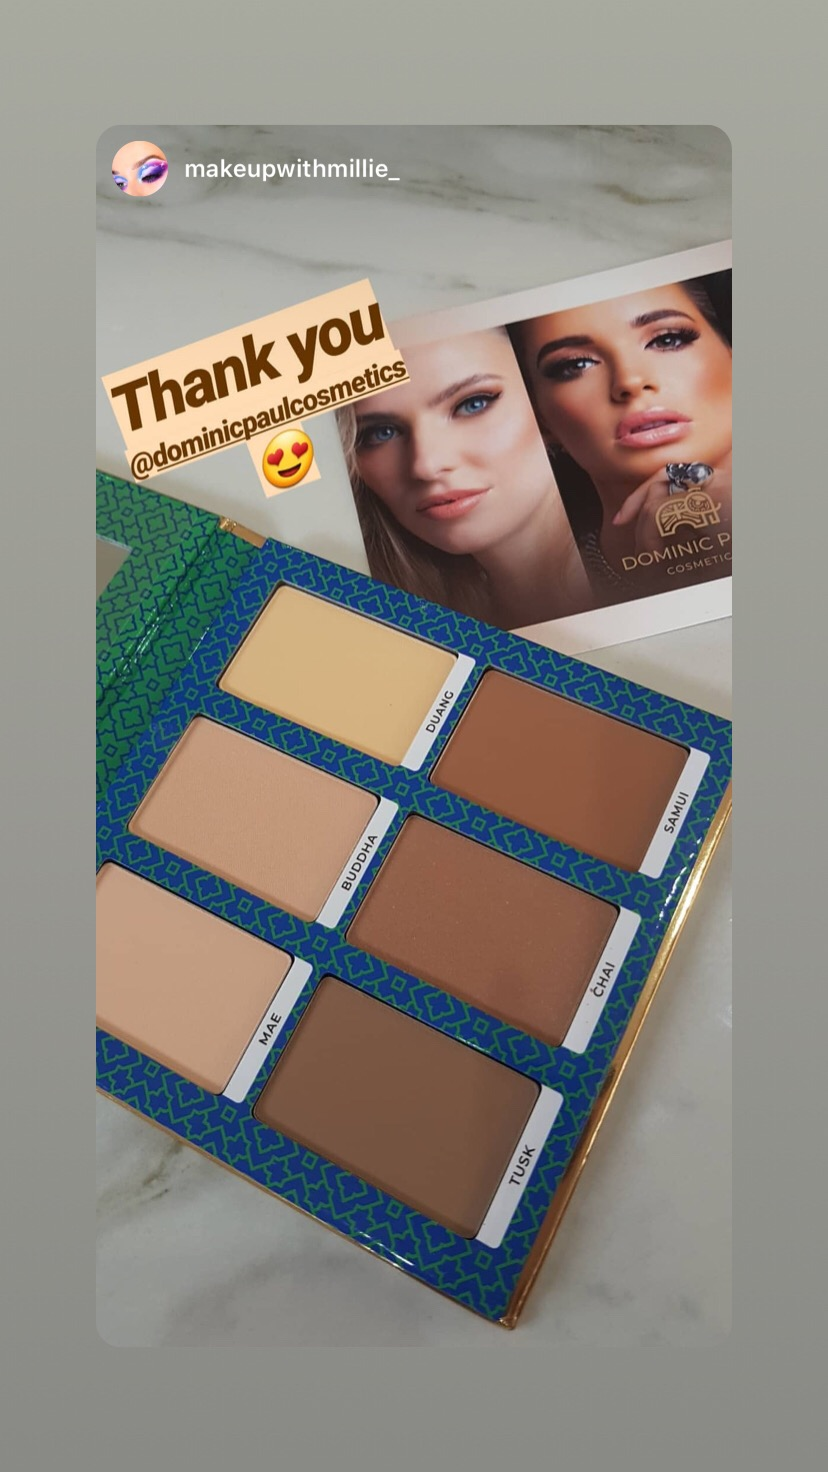 Instagram star makeupwithmillie loves her Dominic Paul cosmetics contour palette